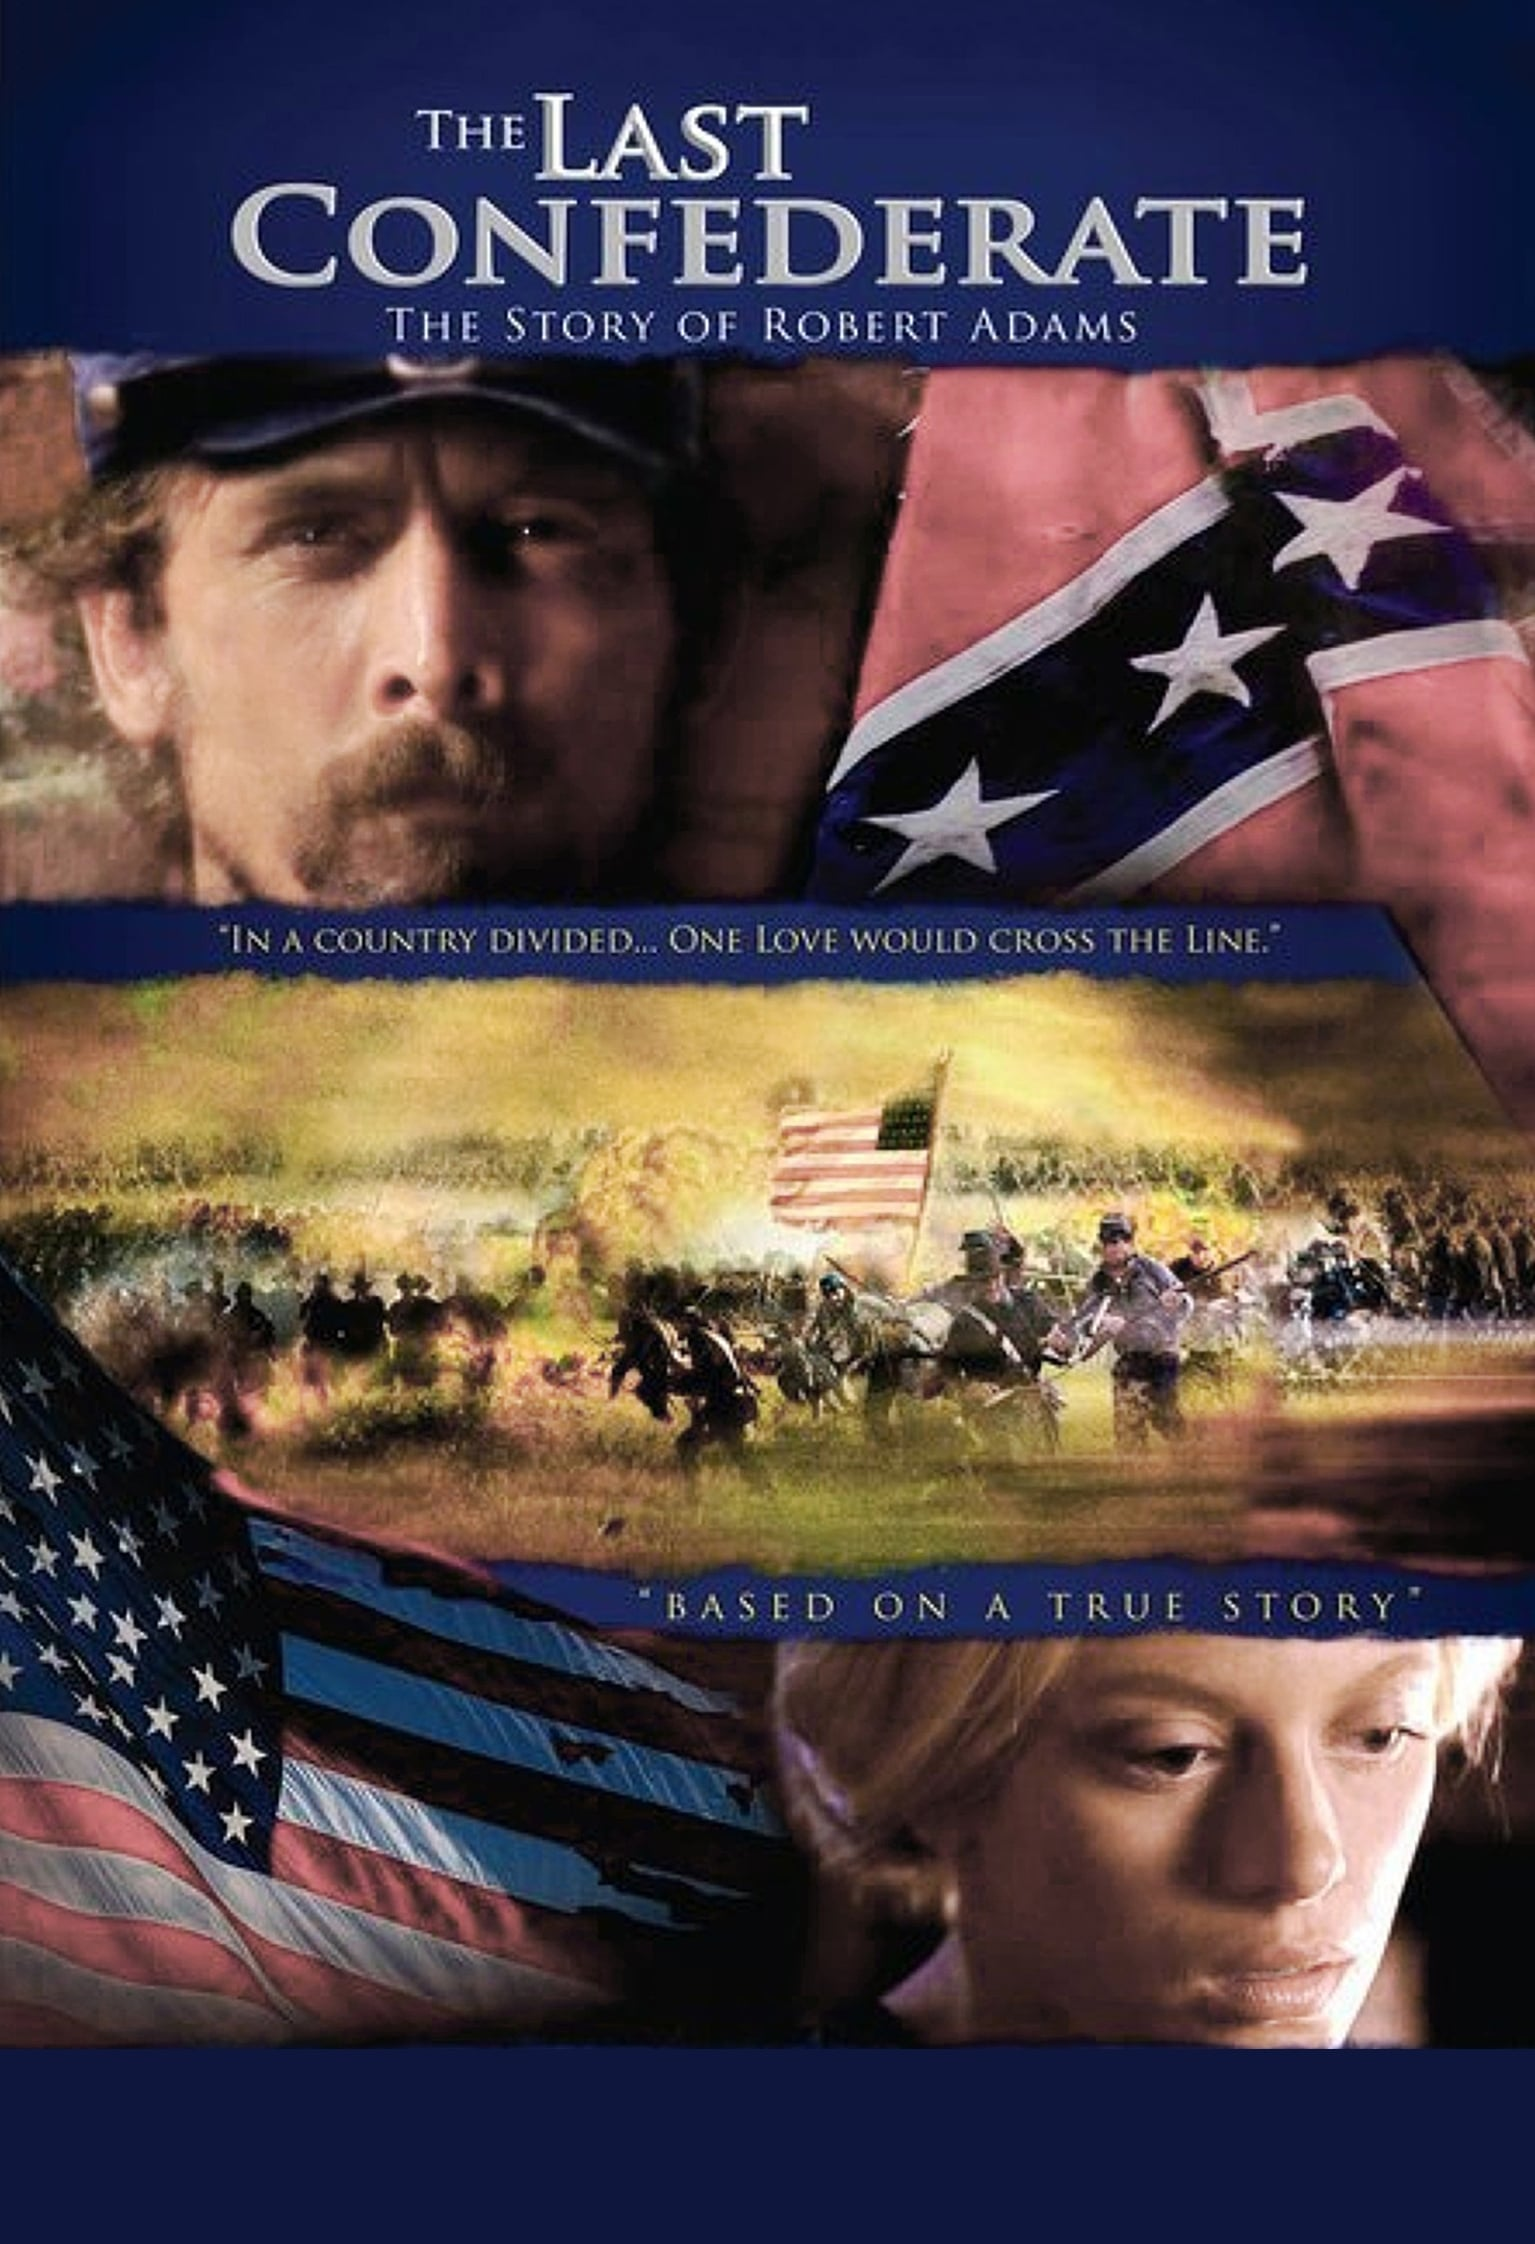 The Last Confederate: The Story of Robert Adams (2005)